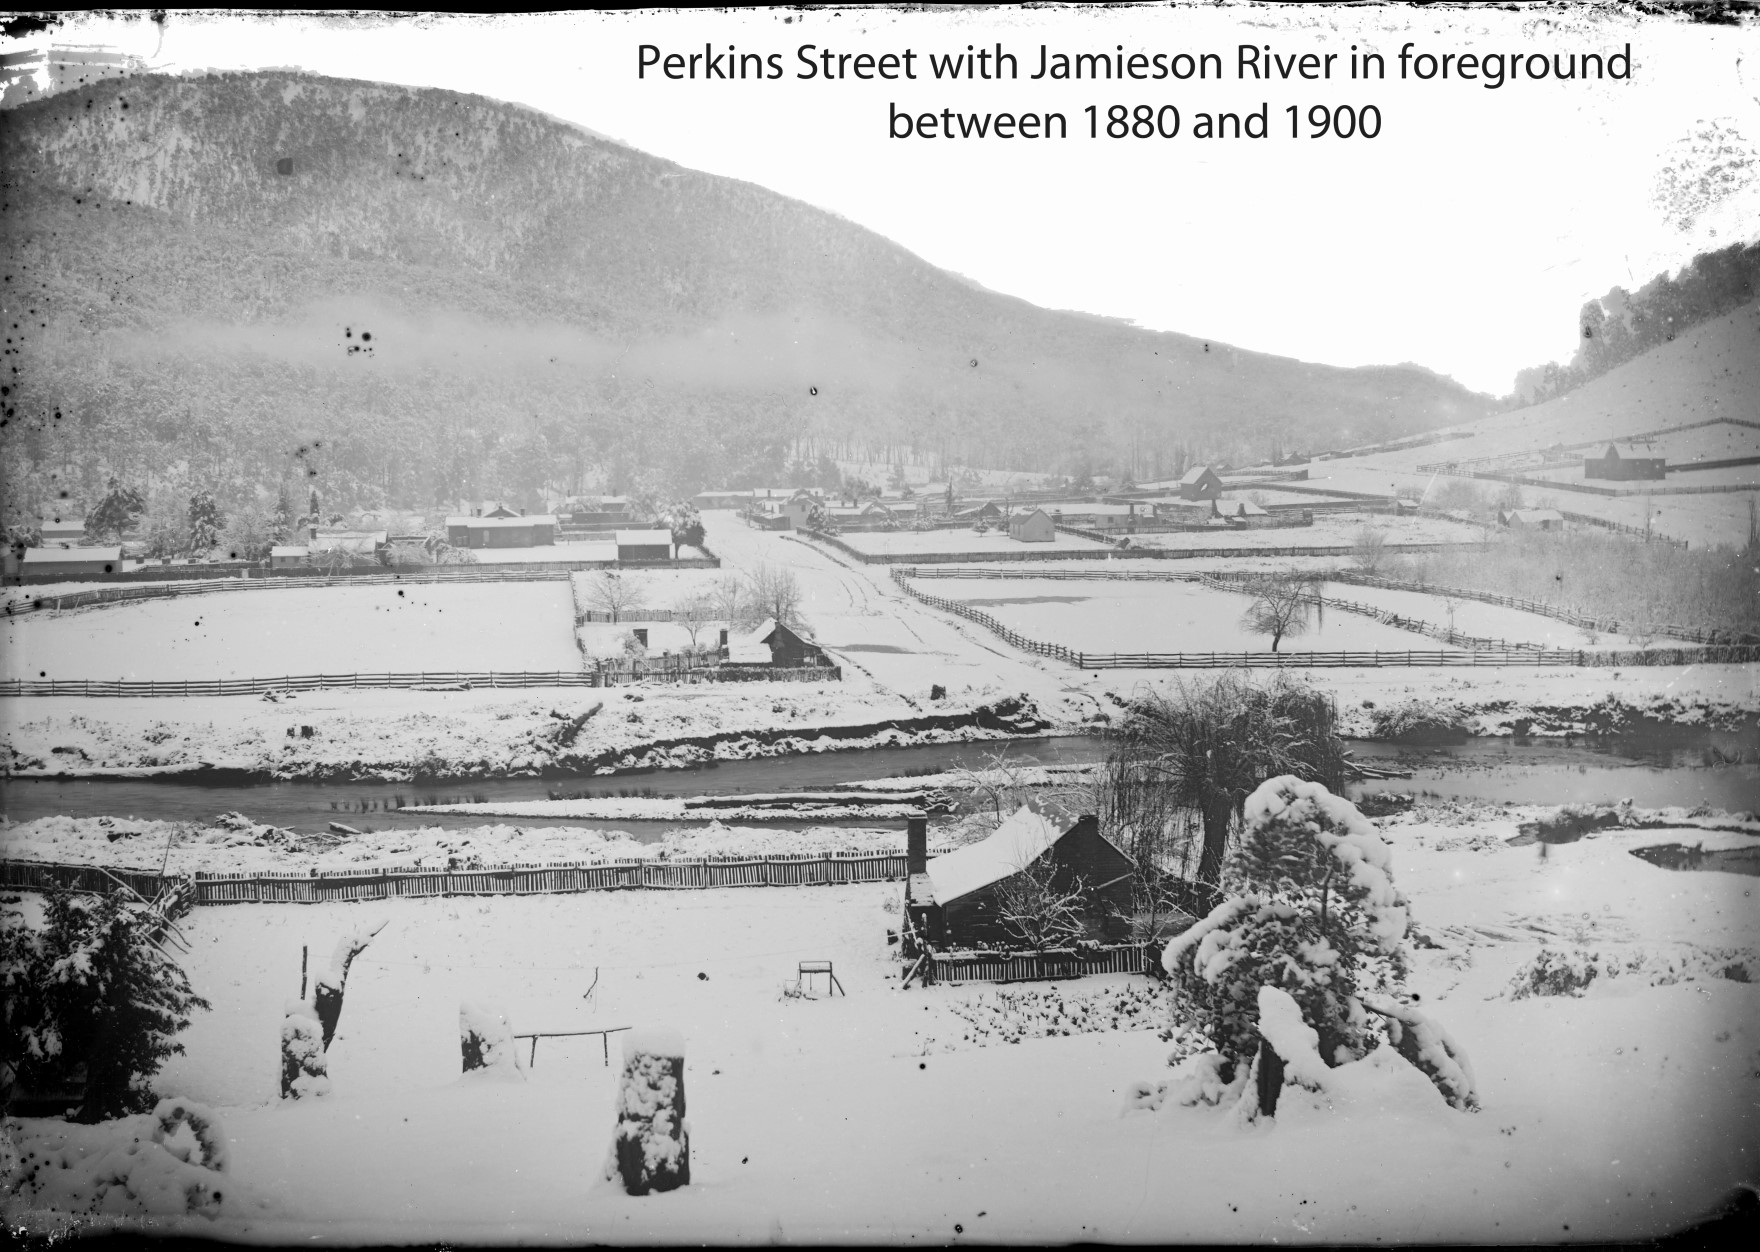 Perkins Street with snow 1880-1900